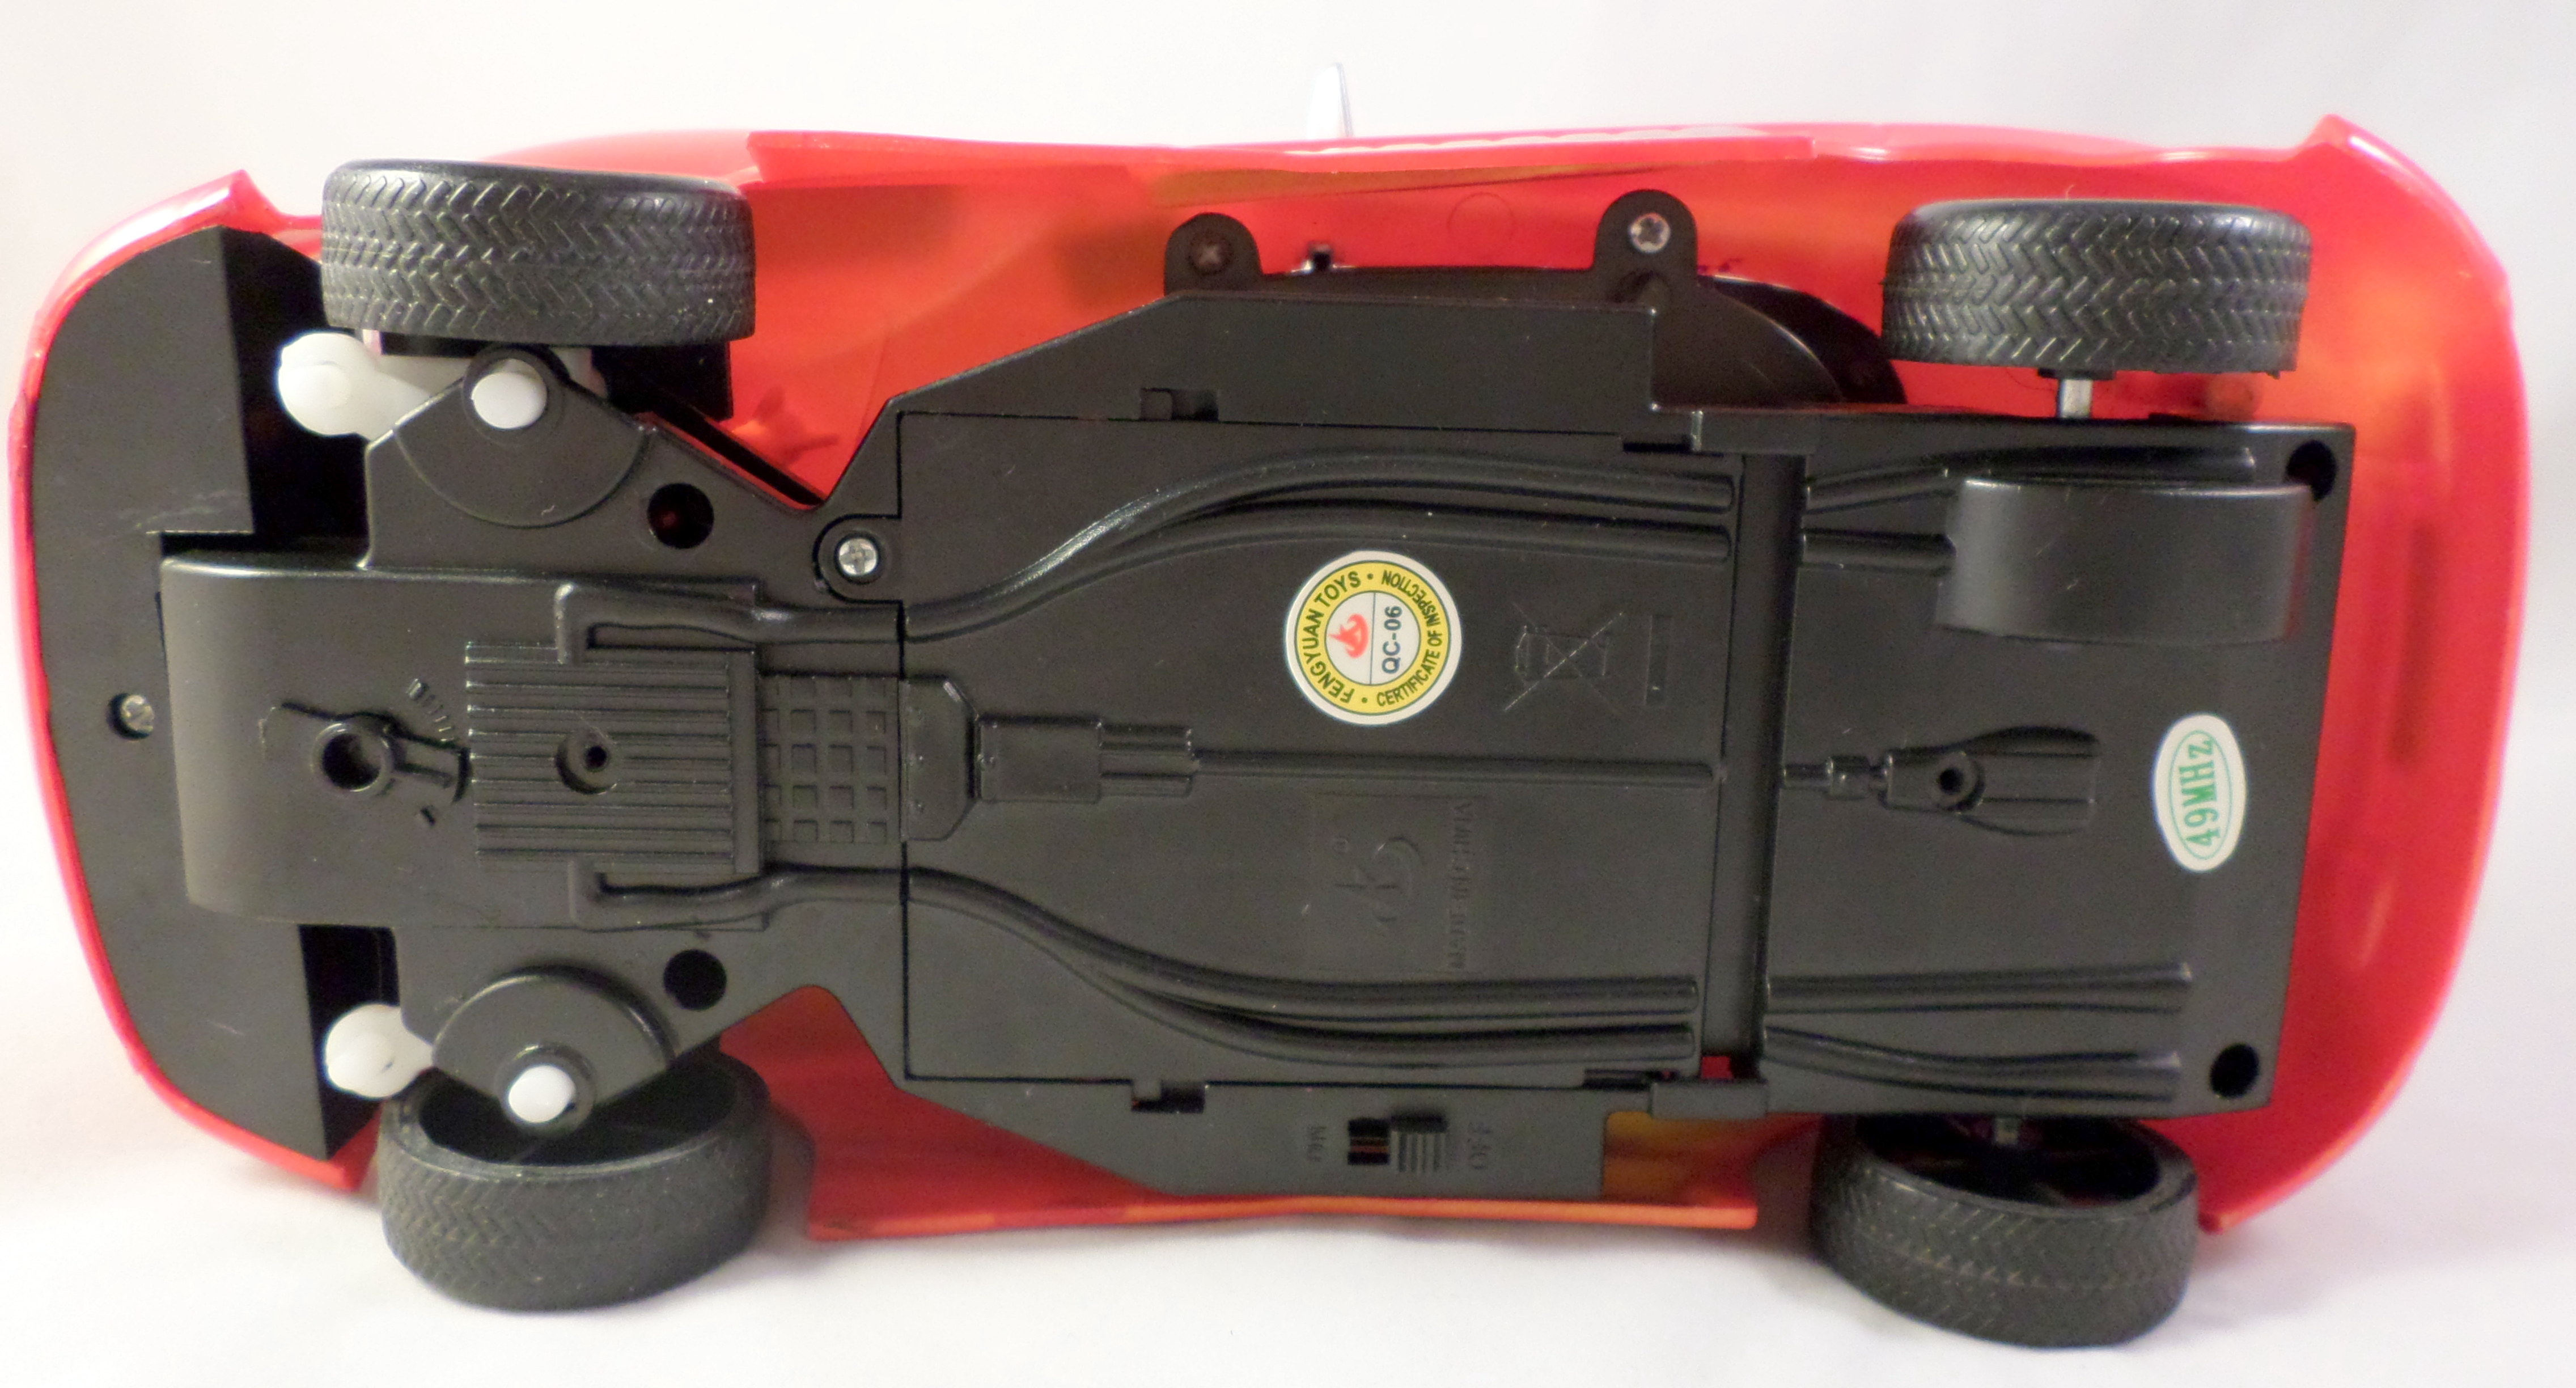 Picture of Disassembling the RC Car